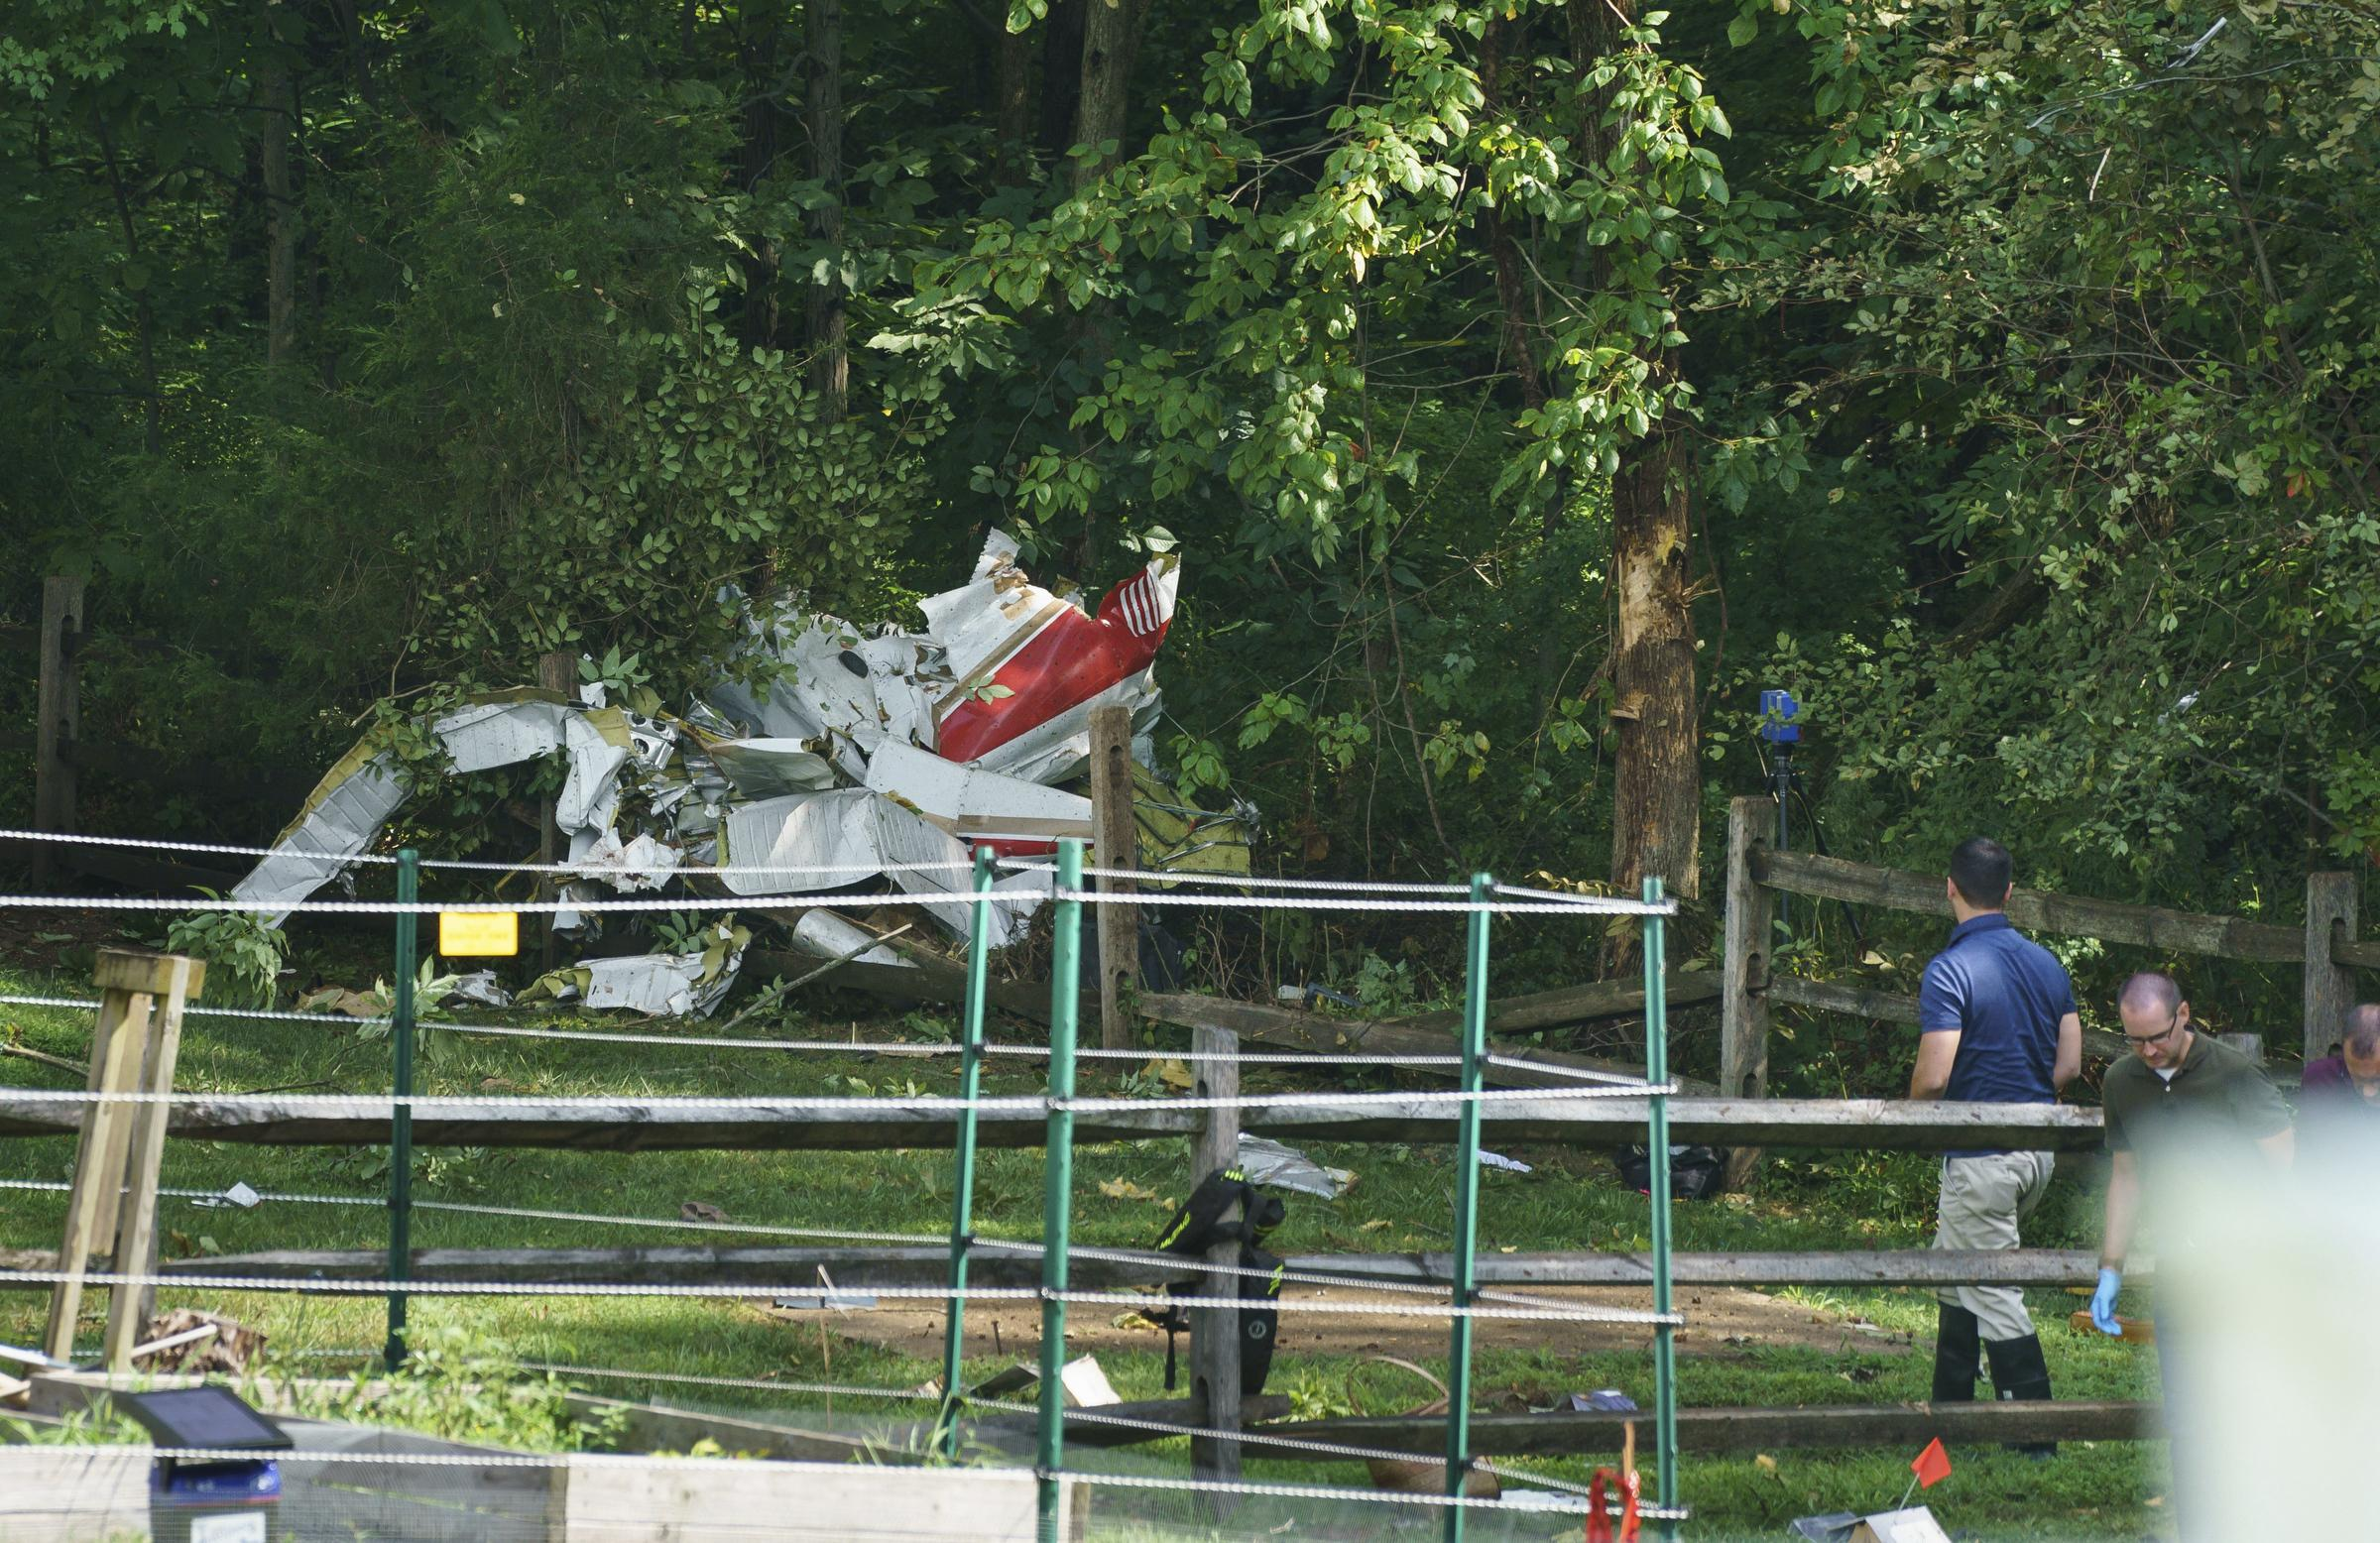 clipart plane crash victims, Free Download Clipart and.